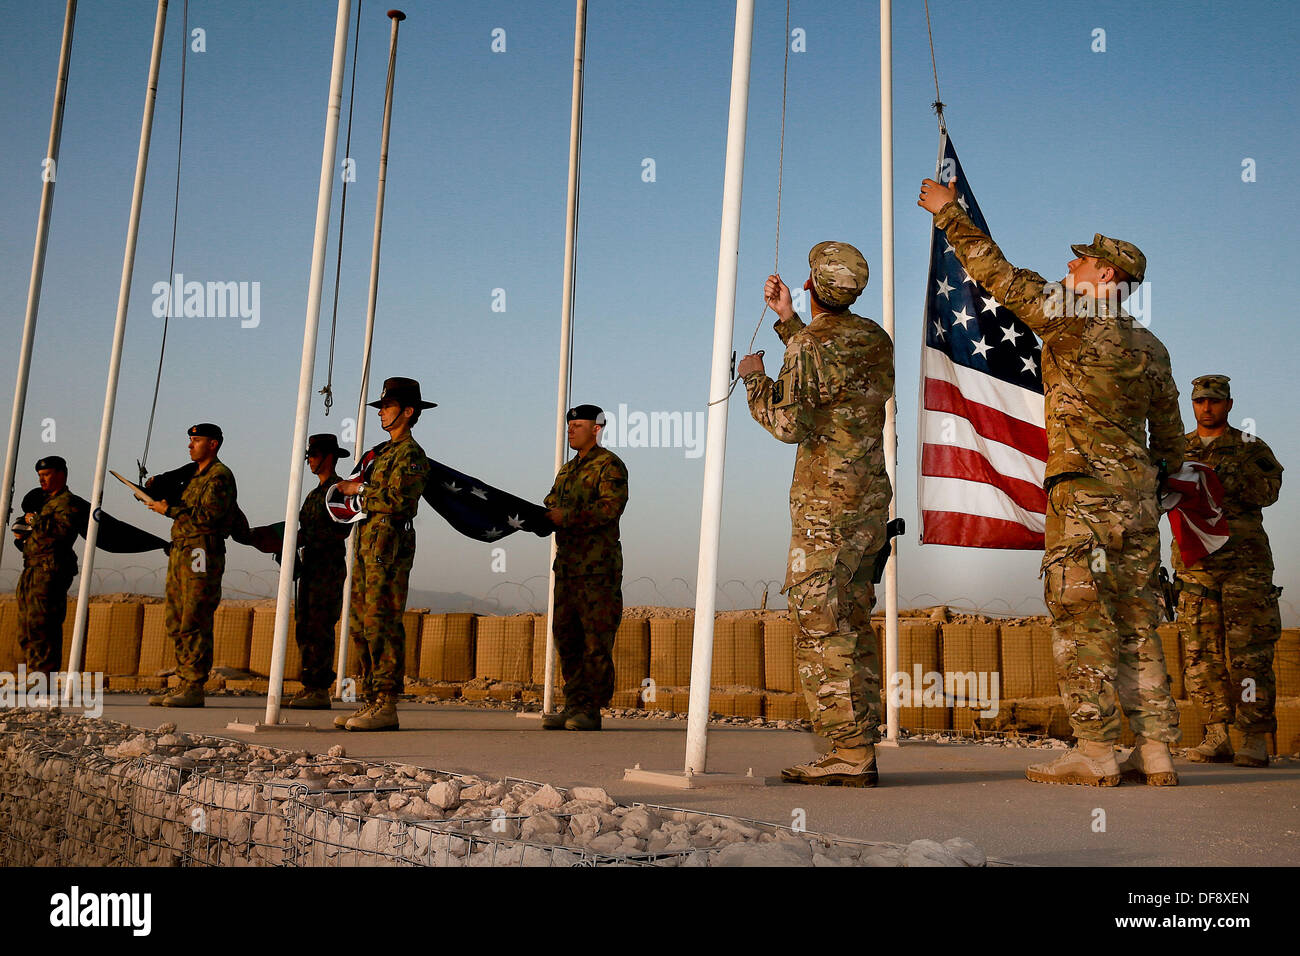 Tarin Kot, Afghanistan. 29th Sep, 2013. Australian and United States military personnel from Combined Team Uruzgan lower the flags of the Camp Holland memorial for the final time September 29, 2013 in Tarin Kot, Afghanistan. As American forces continue to draw down forces in Afghanistan the camp will be handed over to Afghan Forces. © Planetpix/Alamy Live News - Stock Image